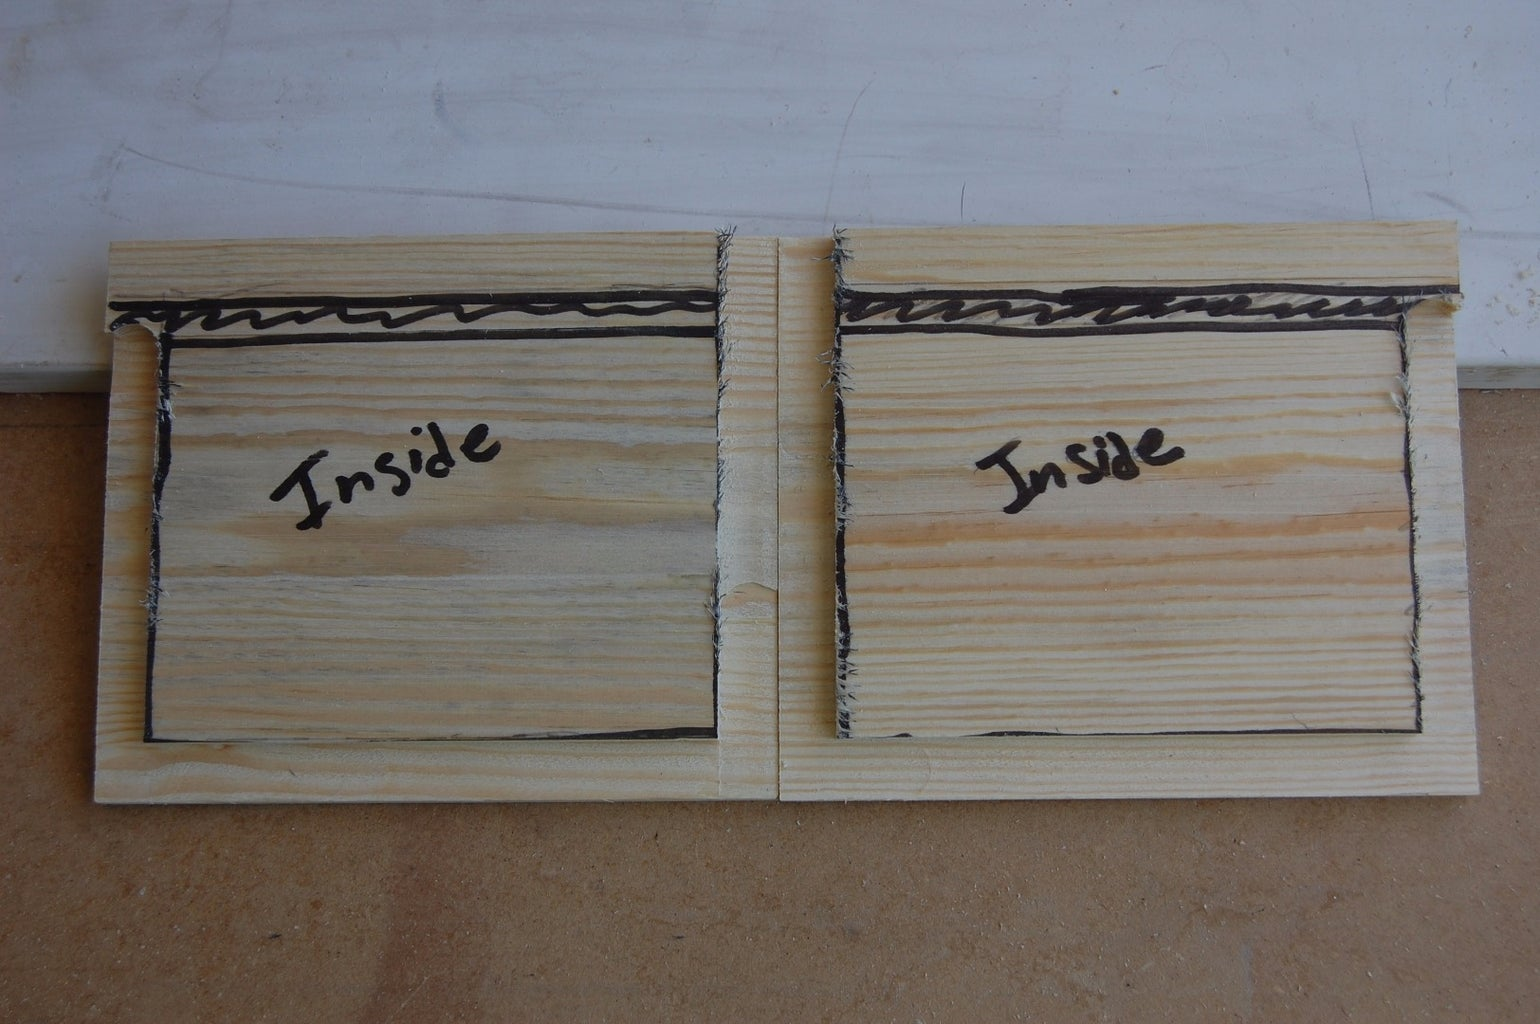 Router for Joints